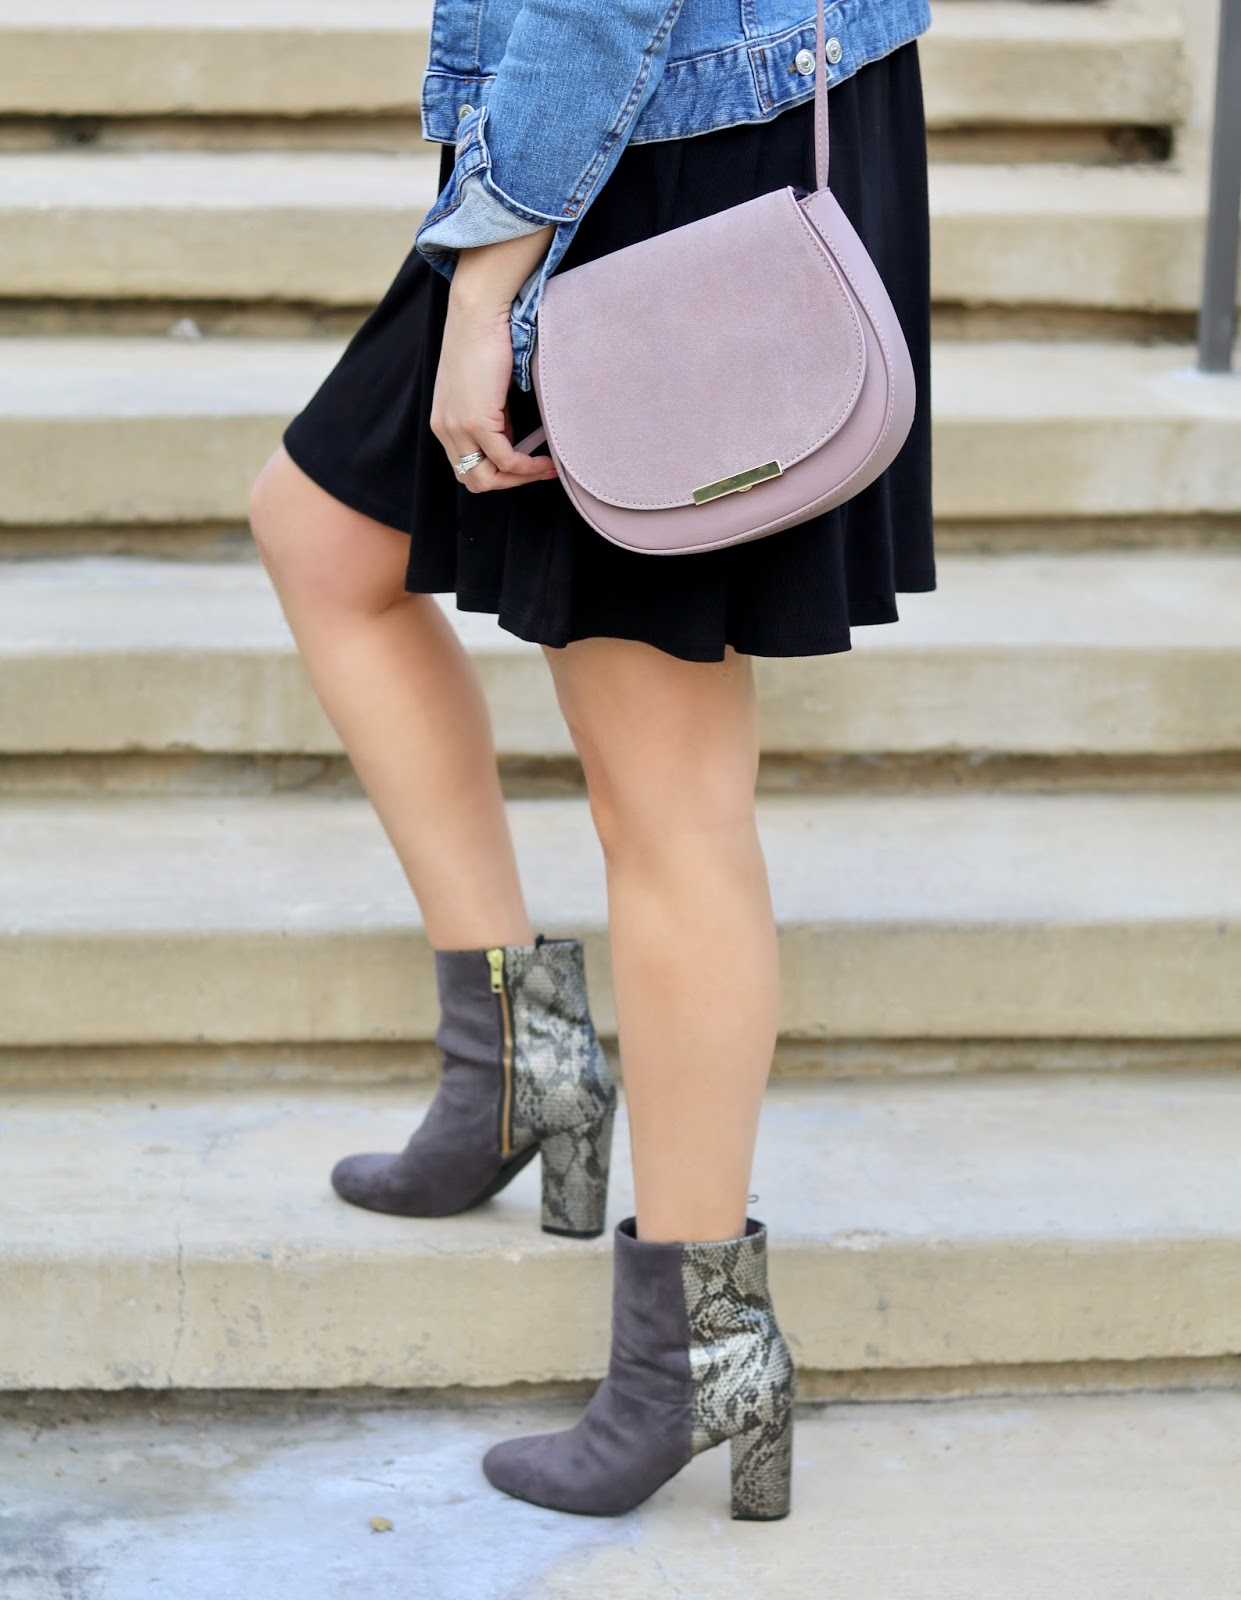 galian handbag blogger, how to wear a purple purse, gray ankle booties